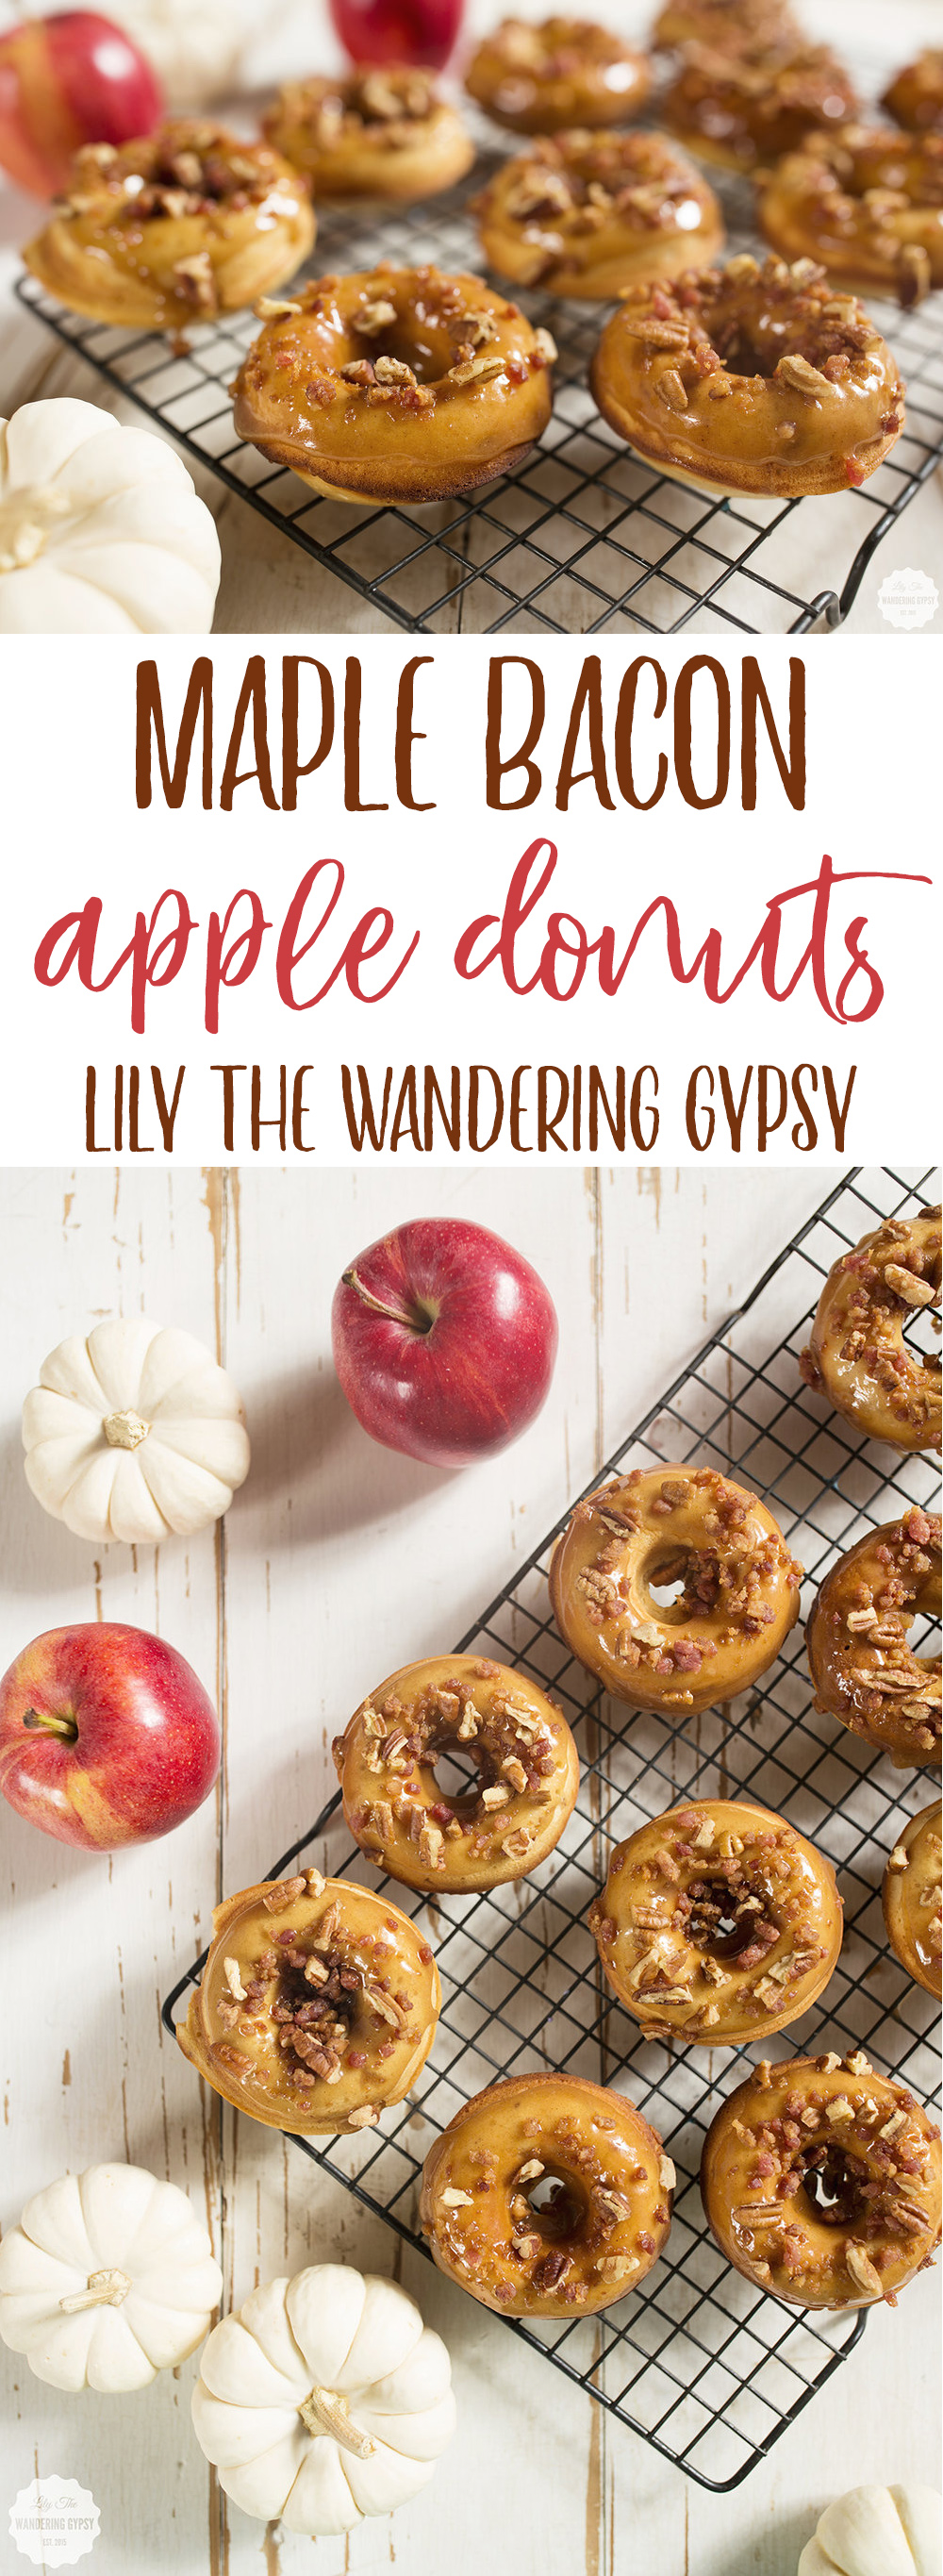 Delicious Fall Donut Recipe - Maple Bacon Pecan Glazed Baked Apple Donuts